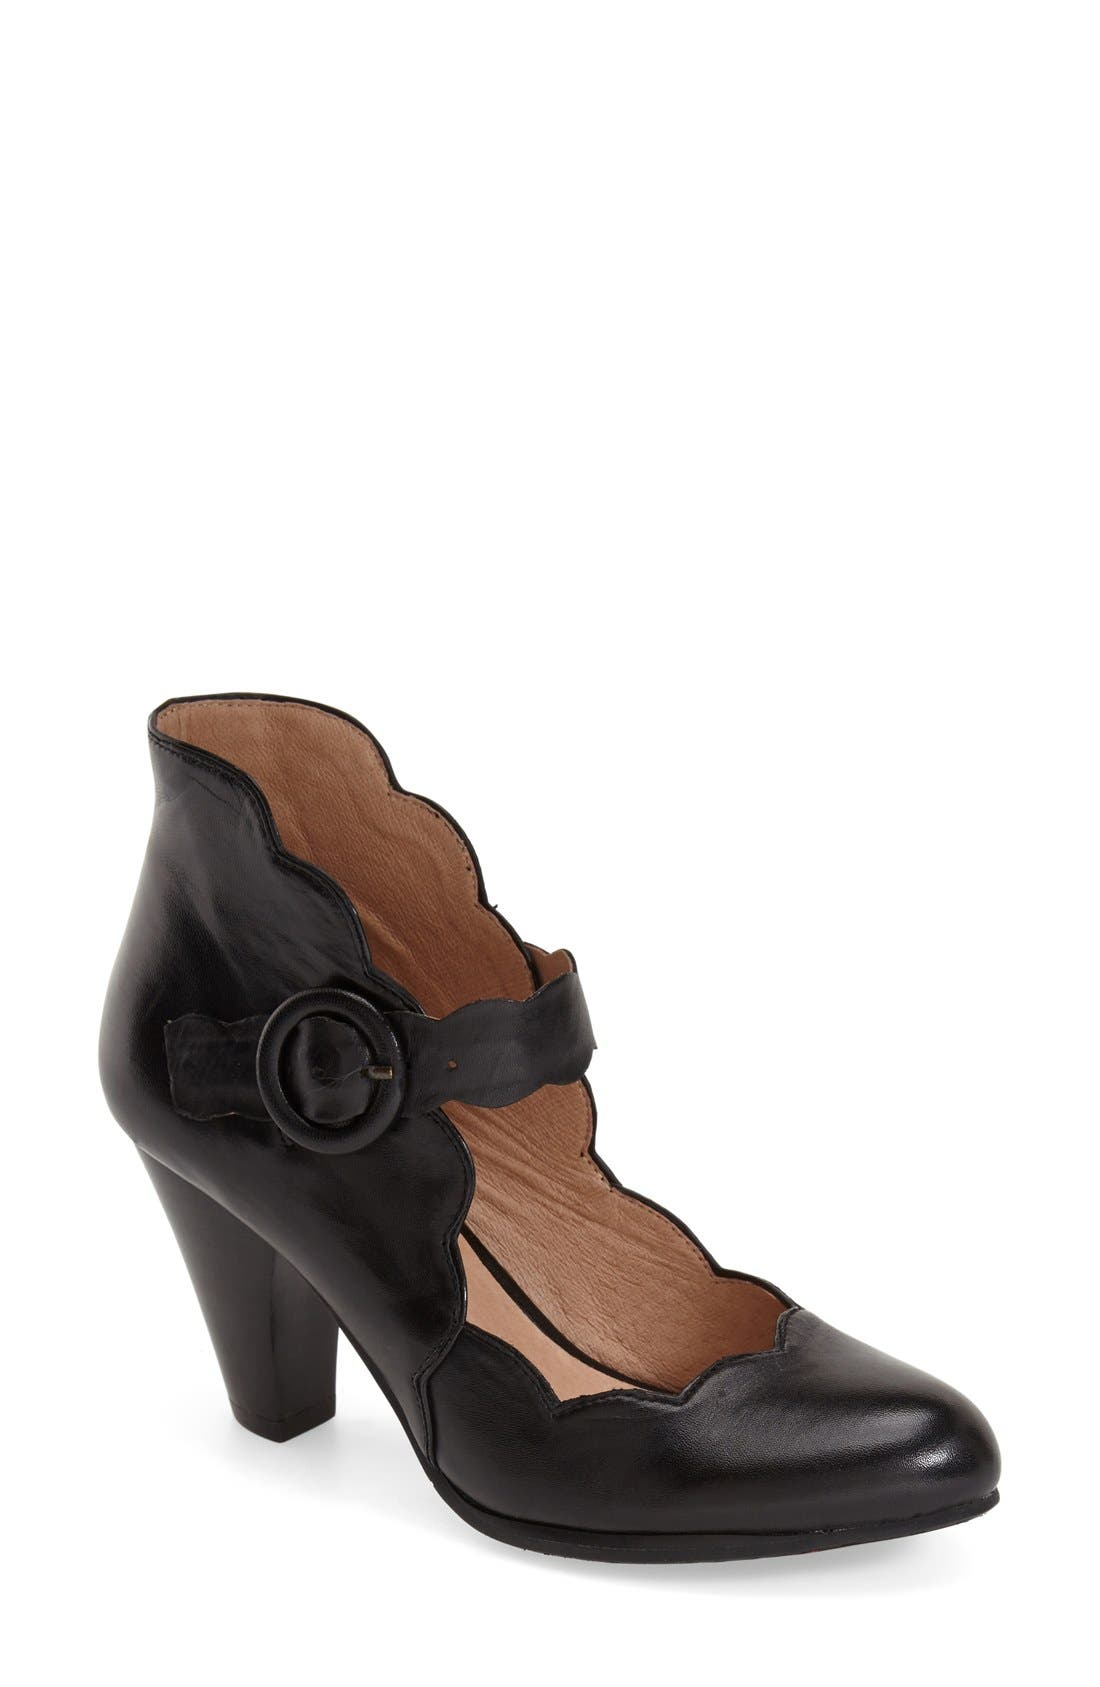 MIZ MOOZ Footwear 'Carissa' Mary Jane Pump